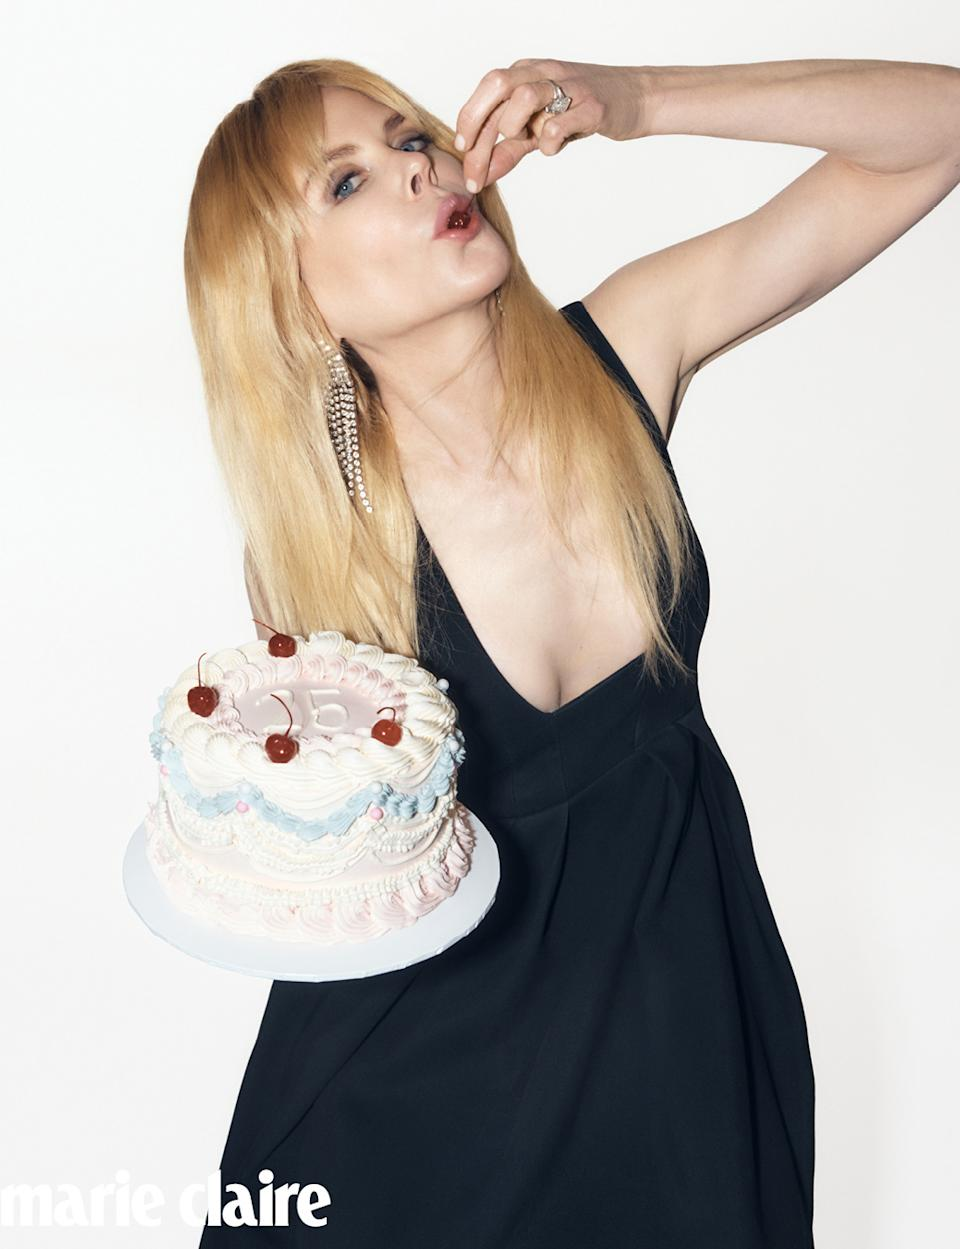 Nicole Kidman eating a cherry from a cake on Marie Claire Australia